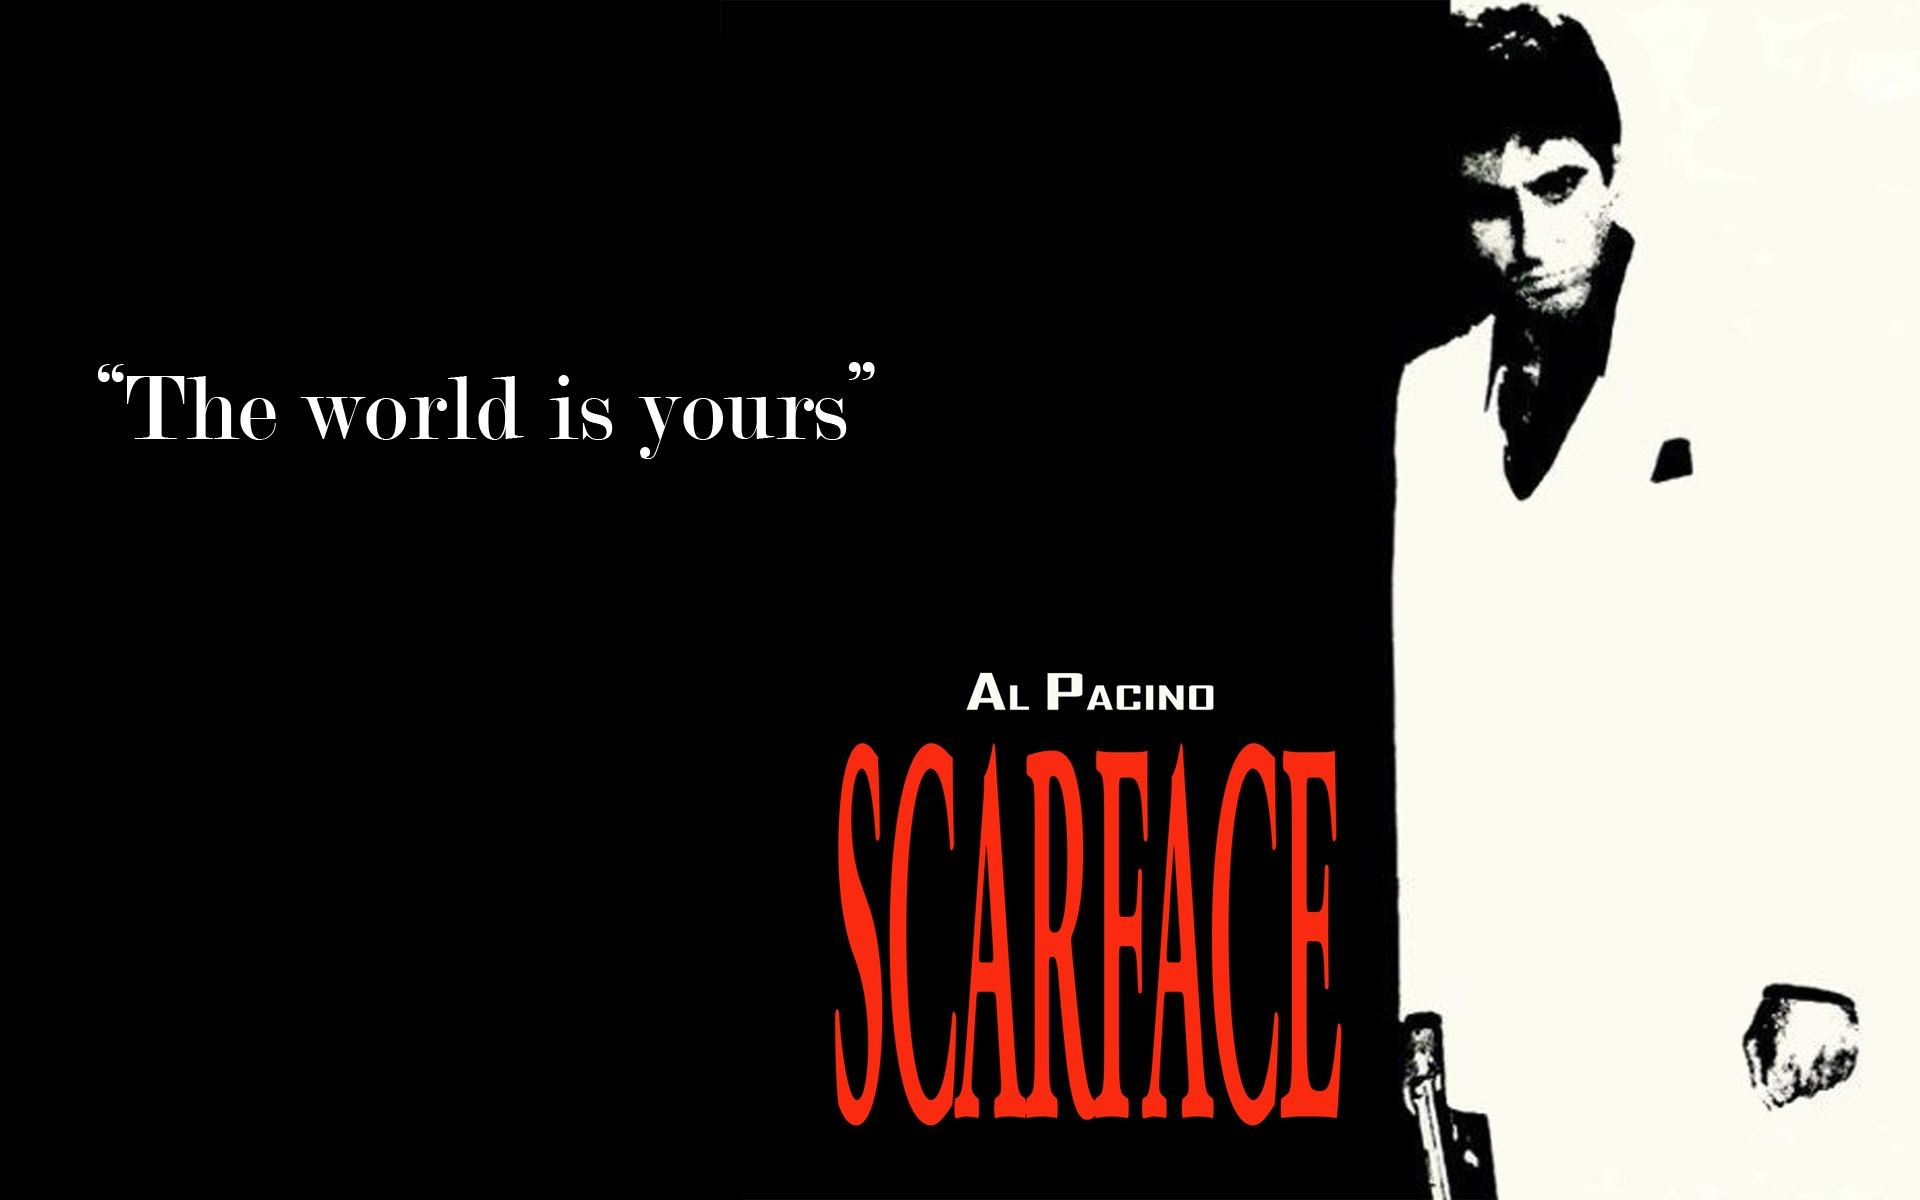 80 Scarface Hd Wallpapers on WallpaperPlay 1920x1200